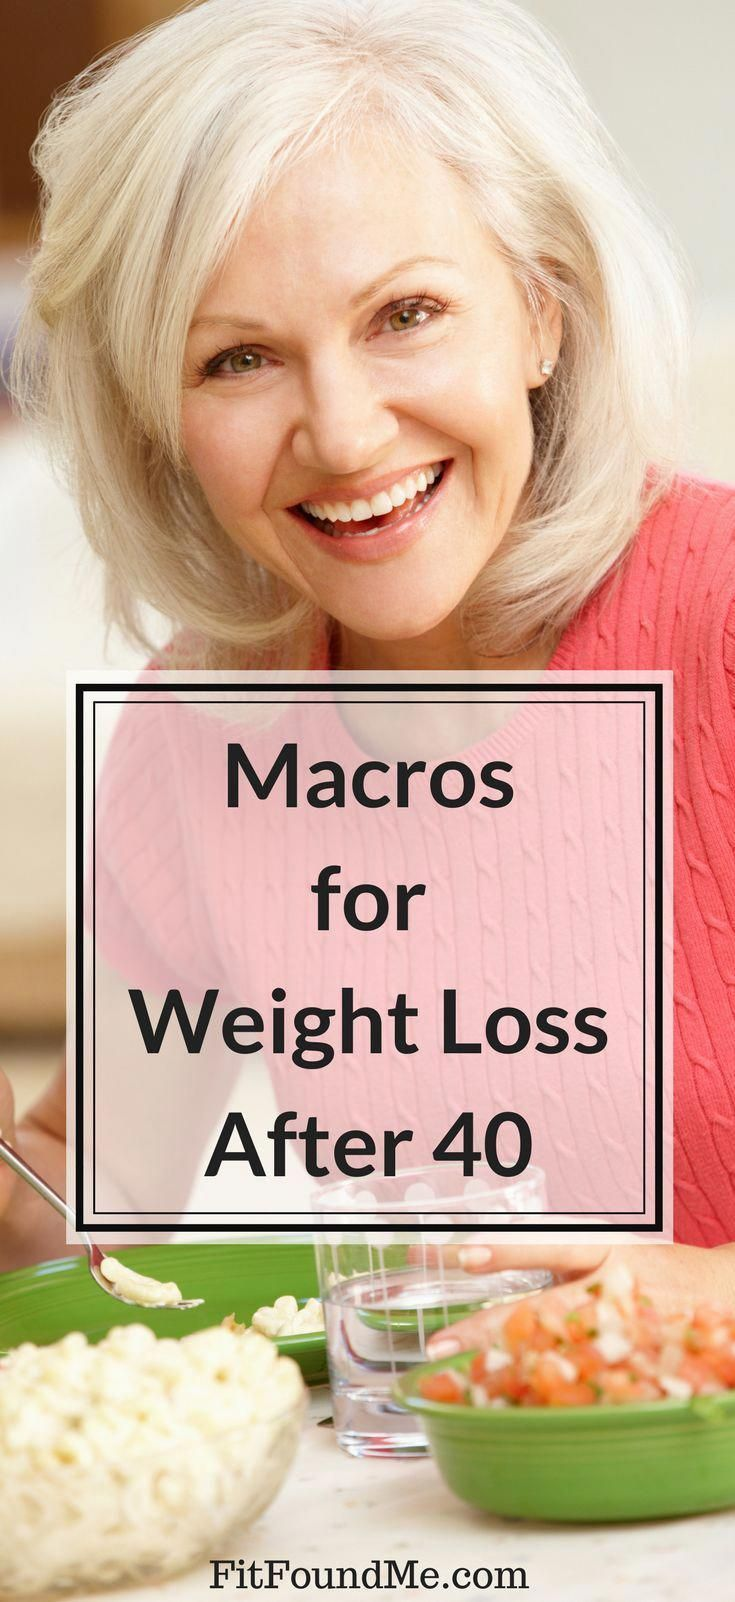 Fast weight loss tips idea #weightlosstips <= | best and safest way to lose weight#weightlossjourney...